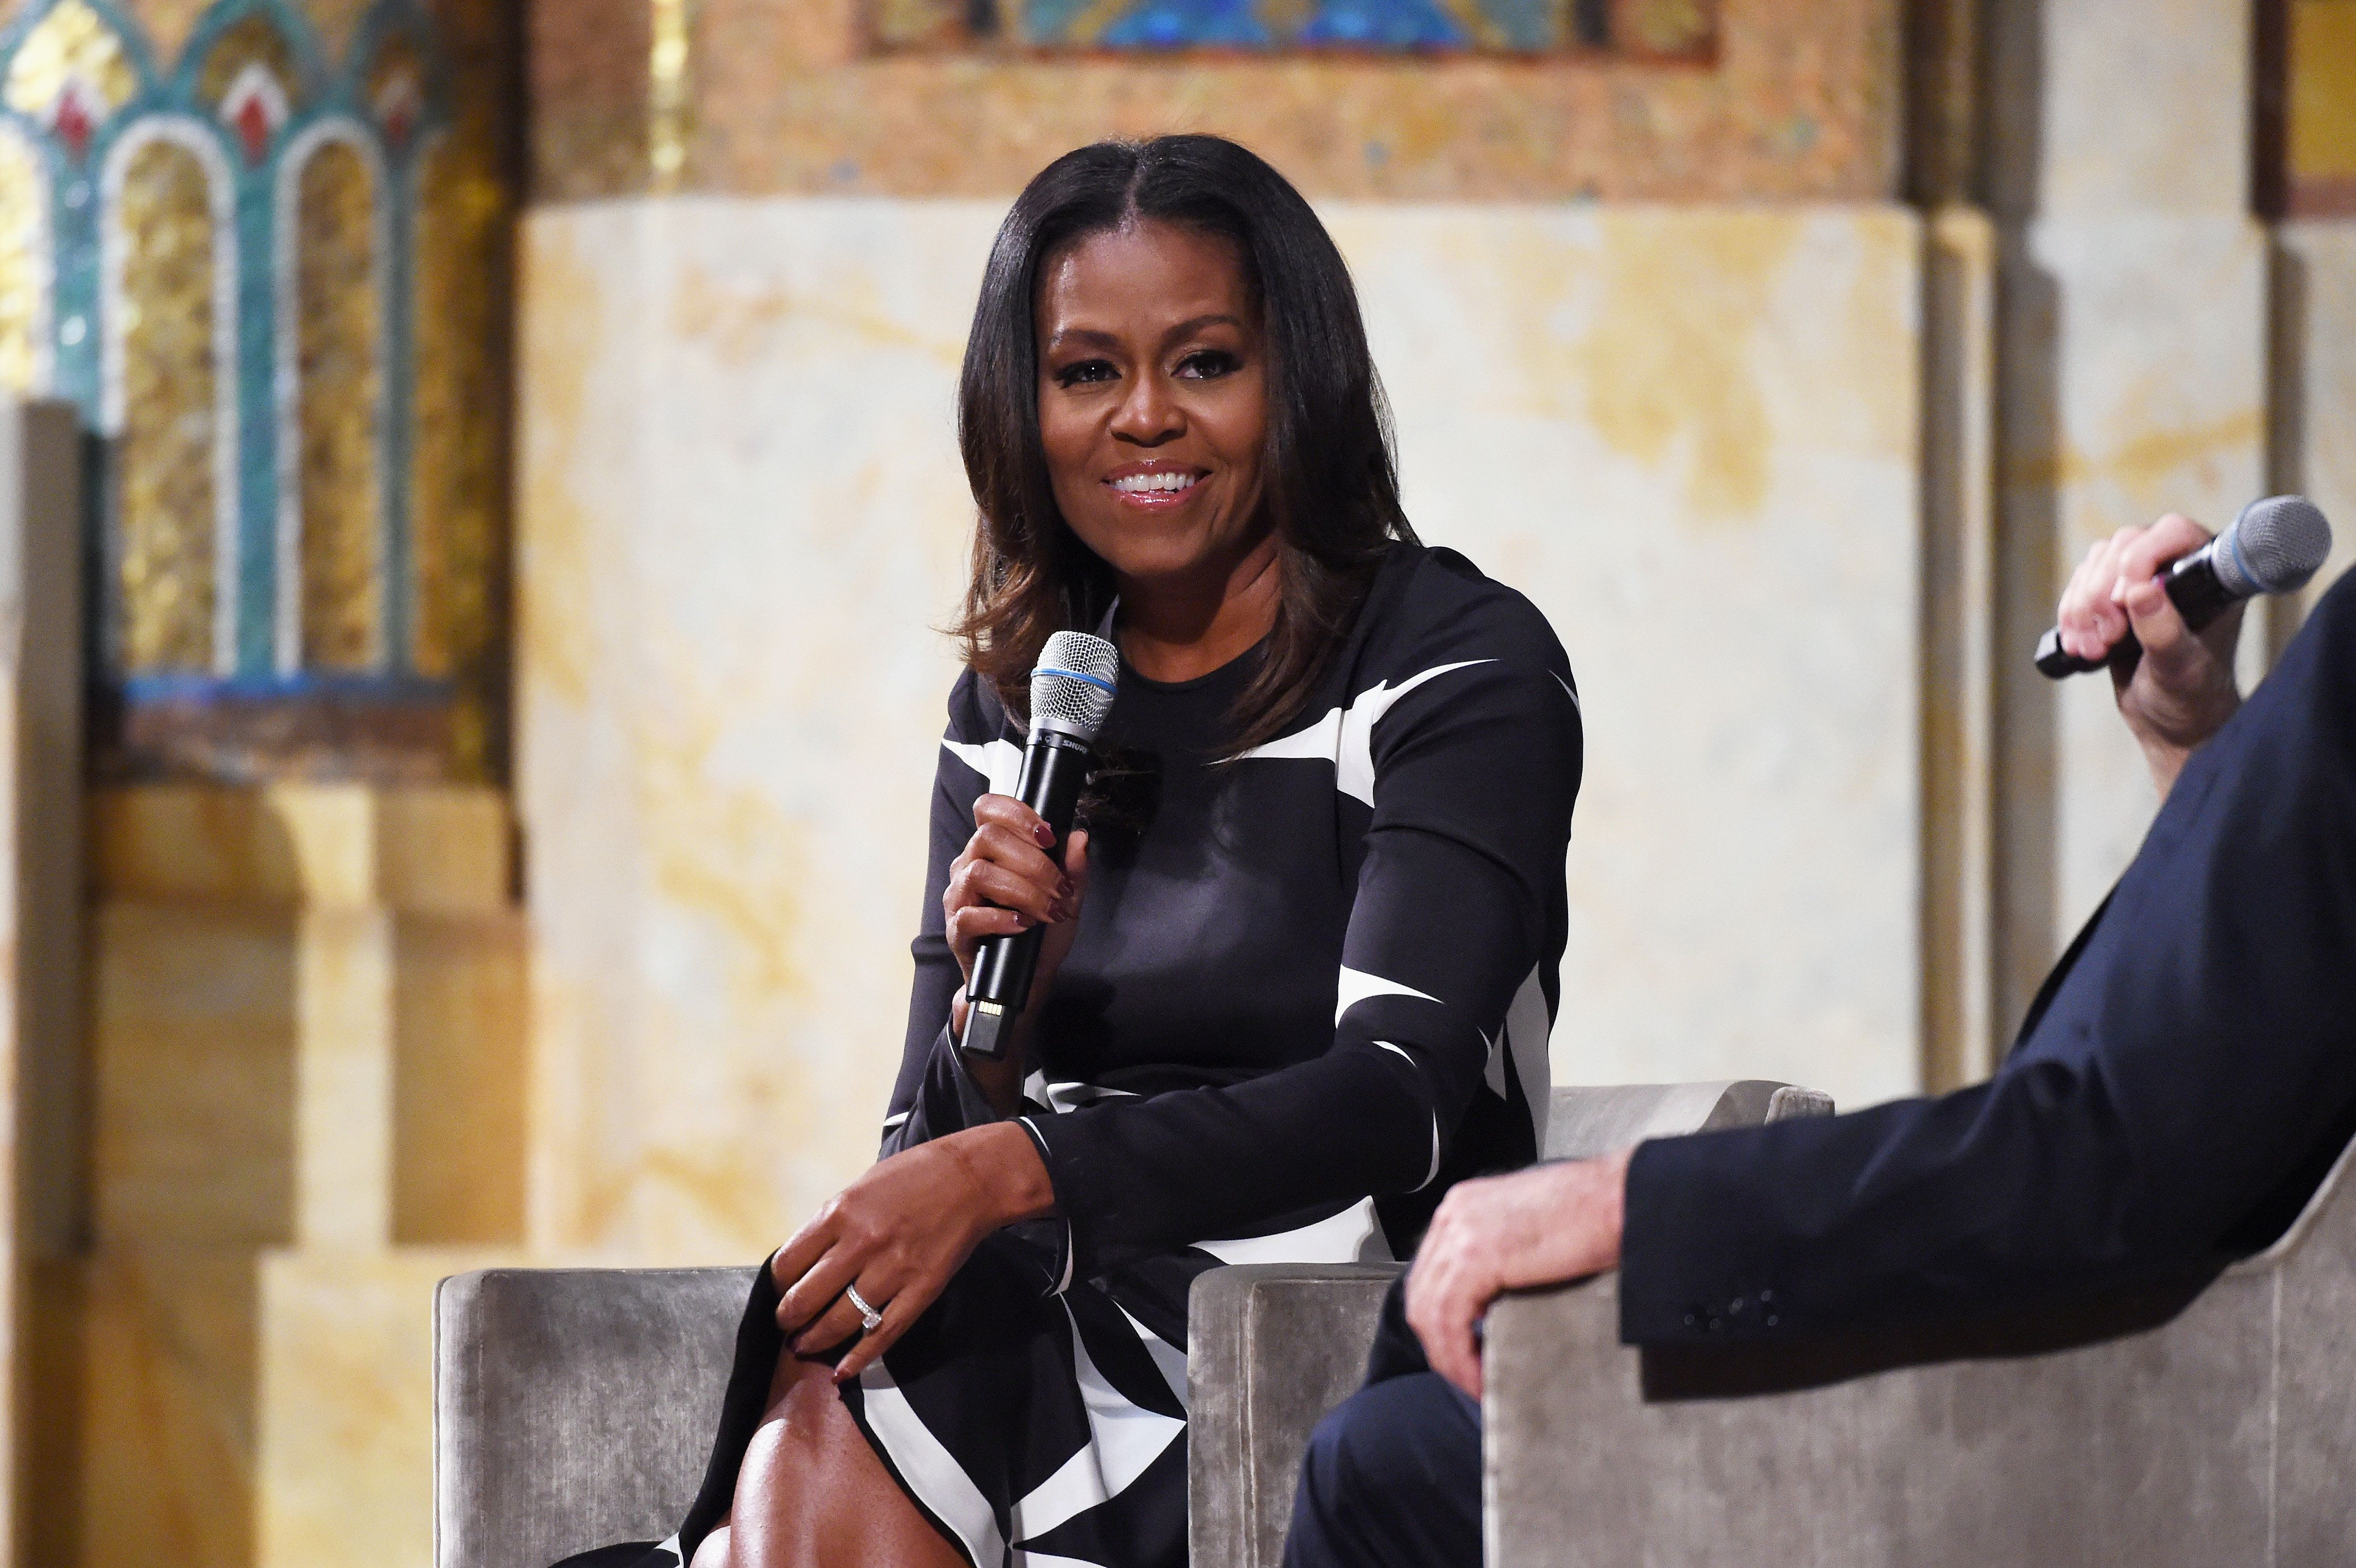 NEW YORK, NY - OCTOBER 25:  Michelle Obama (L) and David Letterman speak onstage as The Streicker Center hosts a Special Evening with Former First Lady Michelle Obama at The Streicker Center on October 25, 2017 in New York City.  (Photo by Michael Kovac/Getty Images)